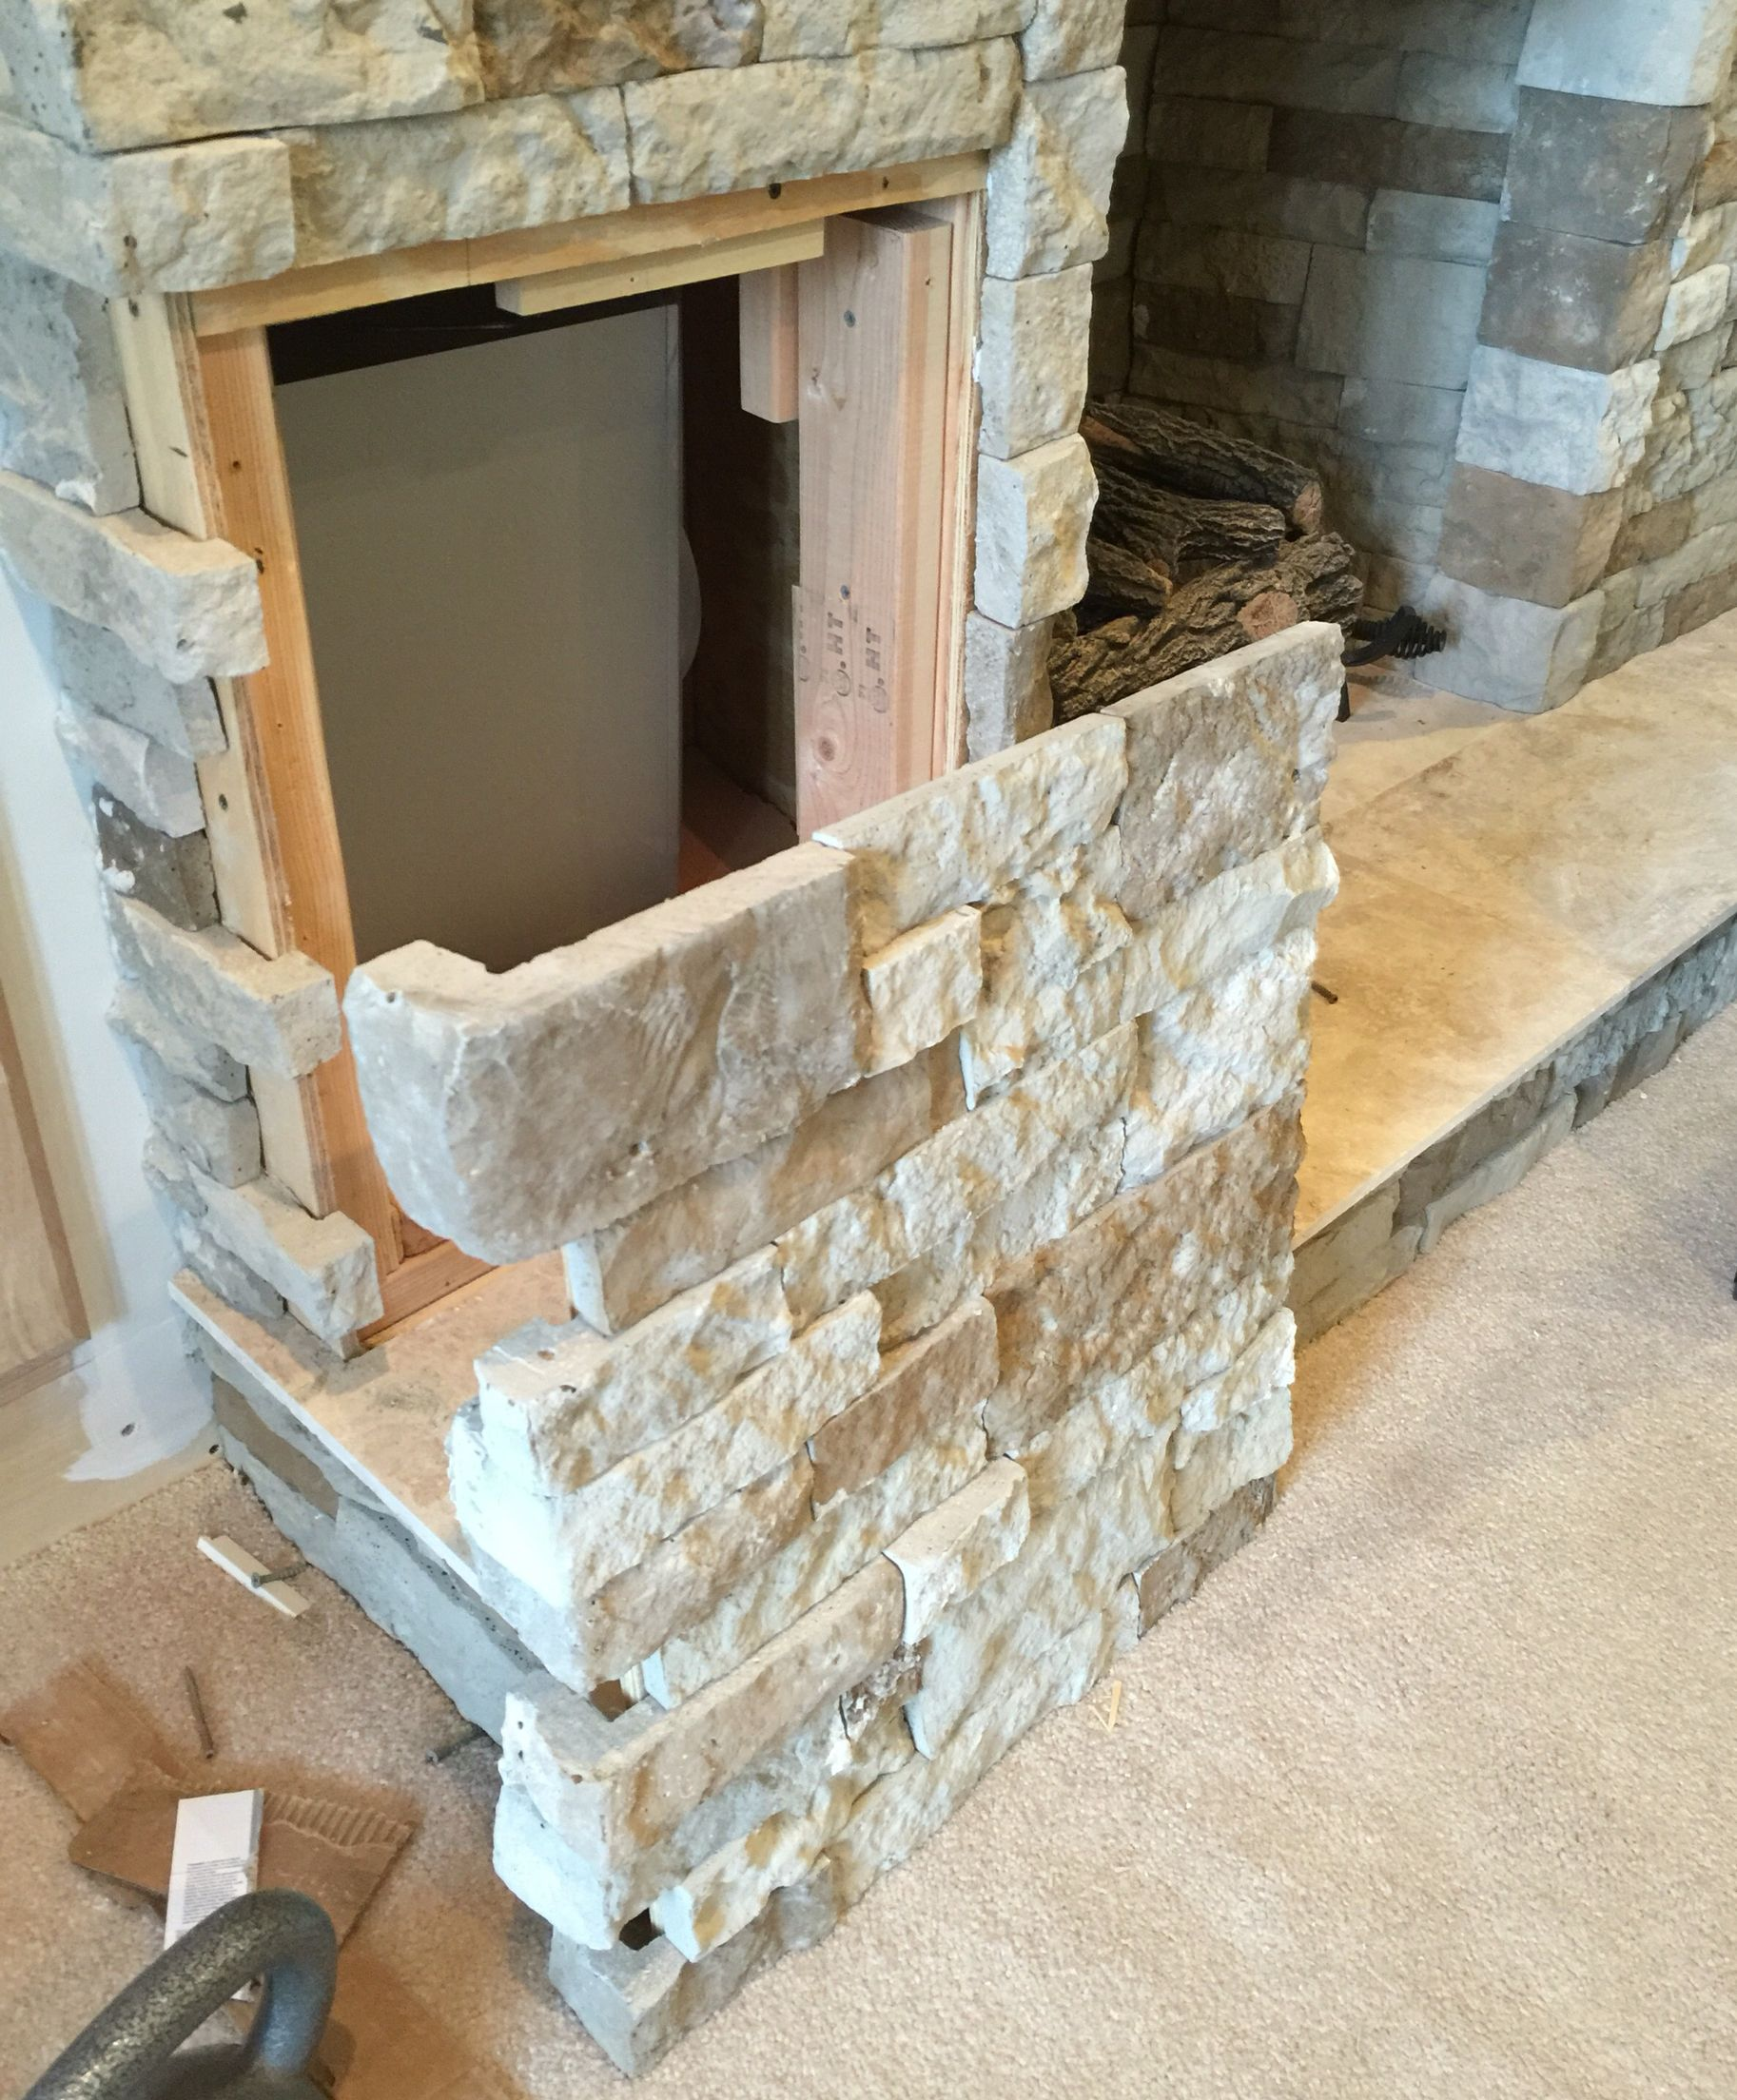 My subwoofer is embedded in the fireplace structure A section in